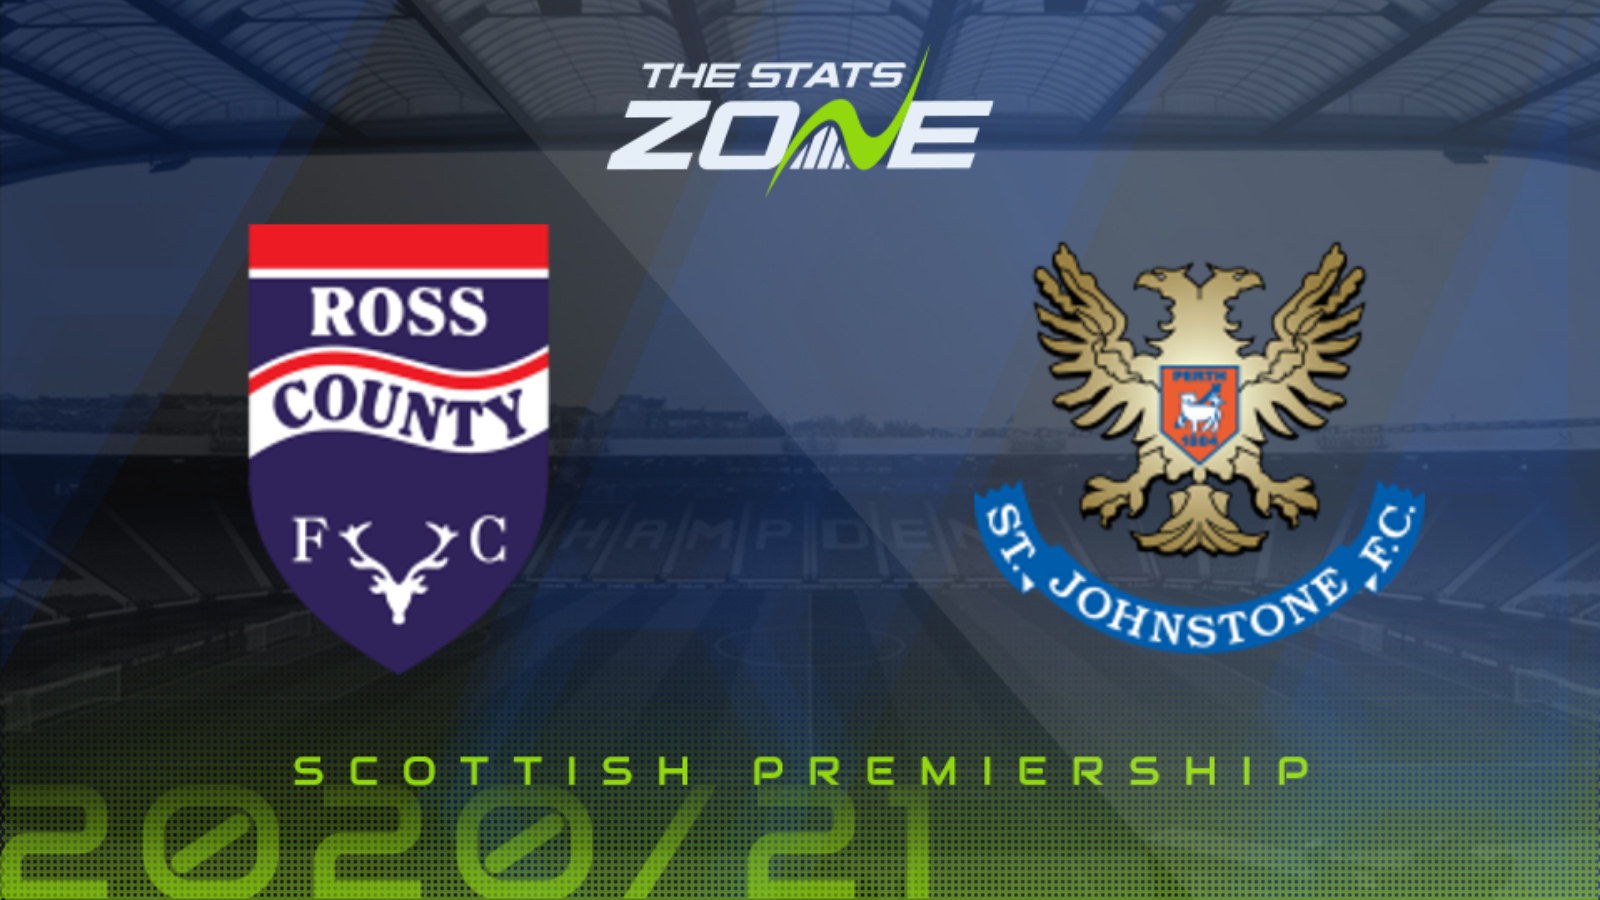 Ross county vs st johnstone betting preview betting odds nhl lockout 2021